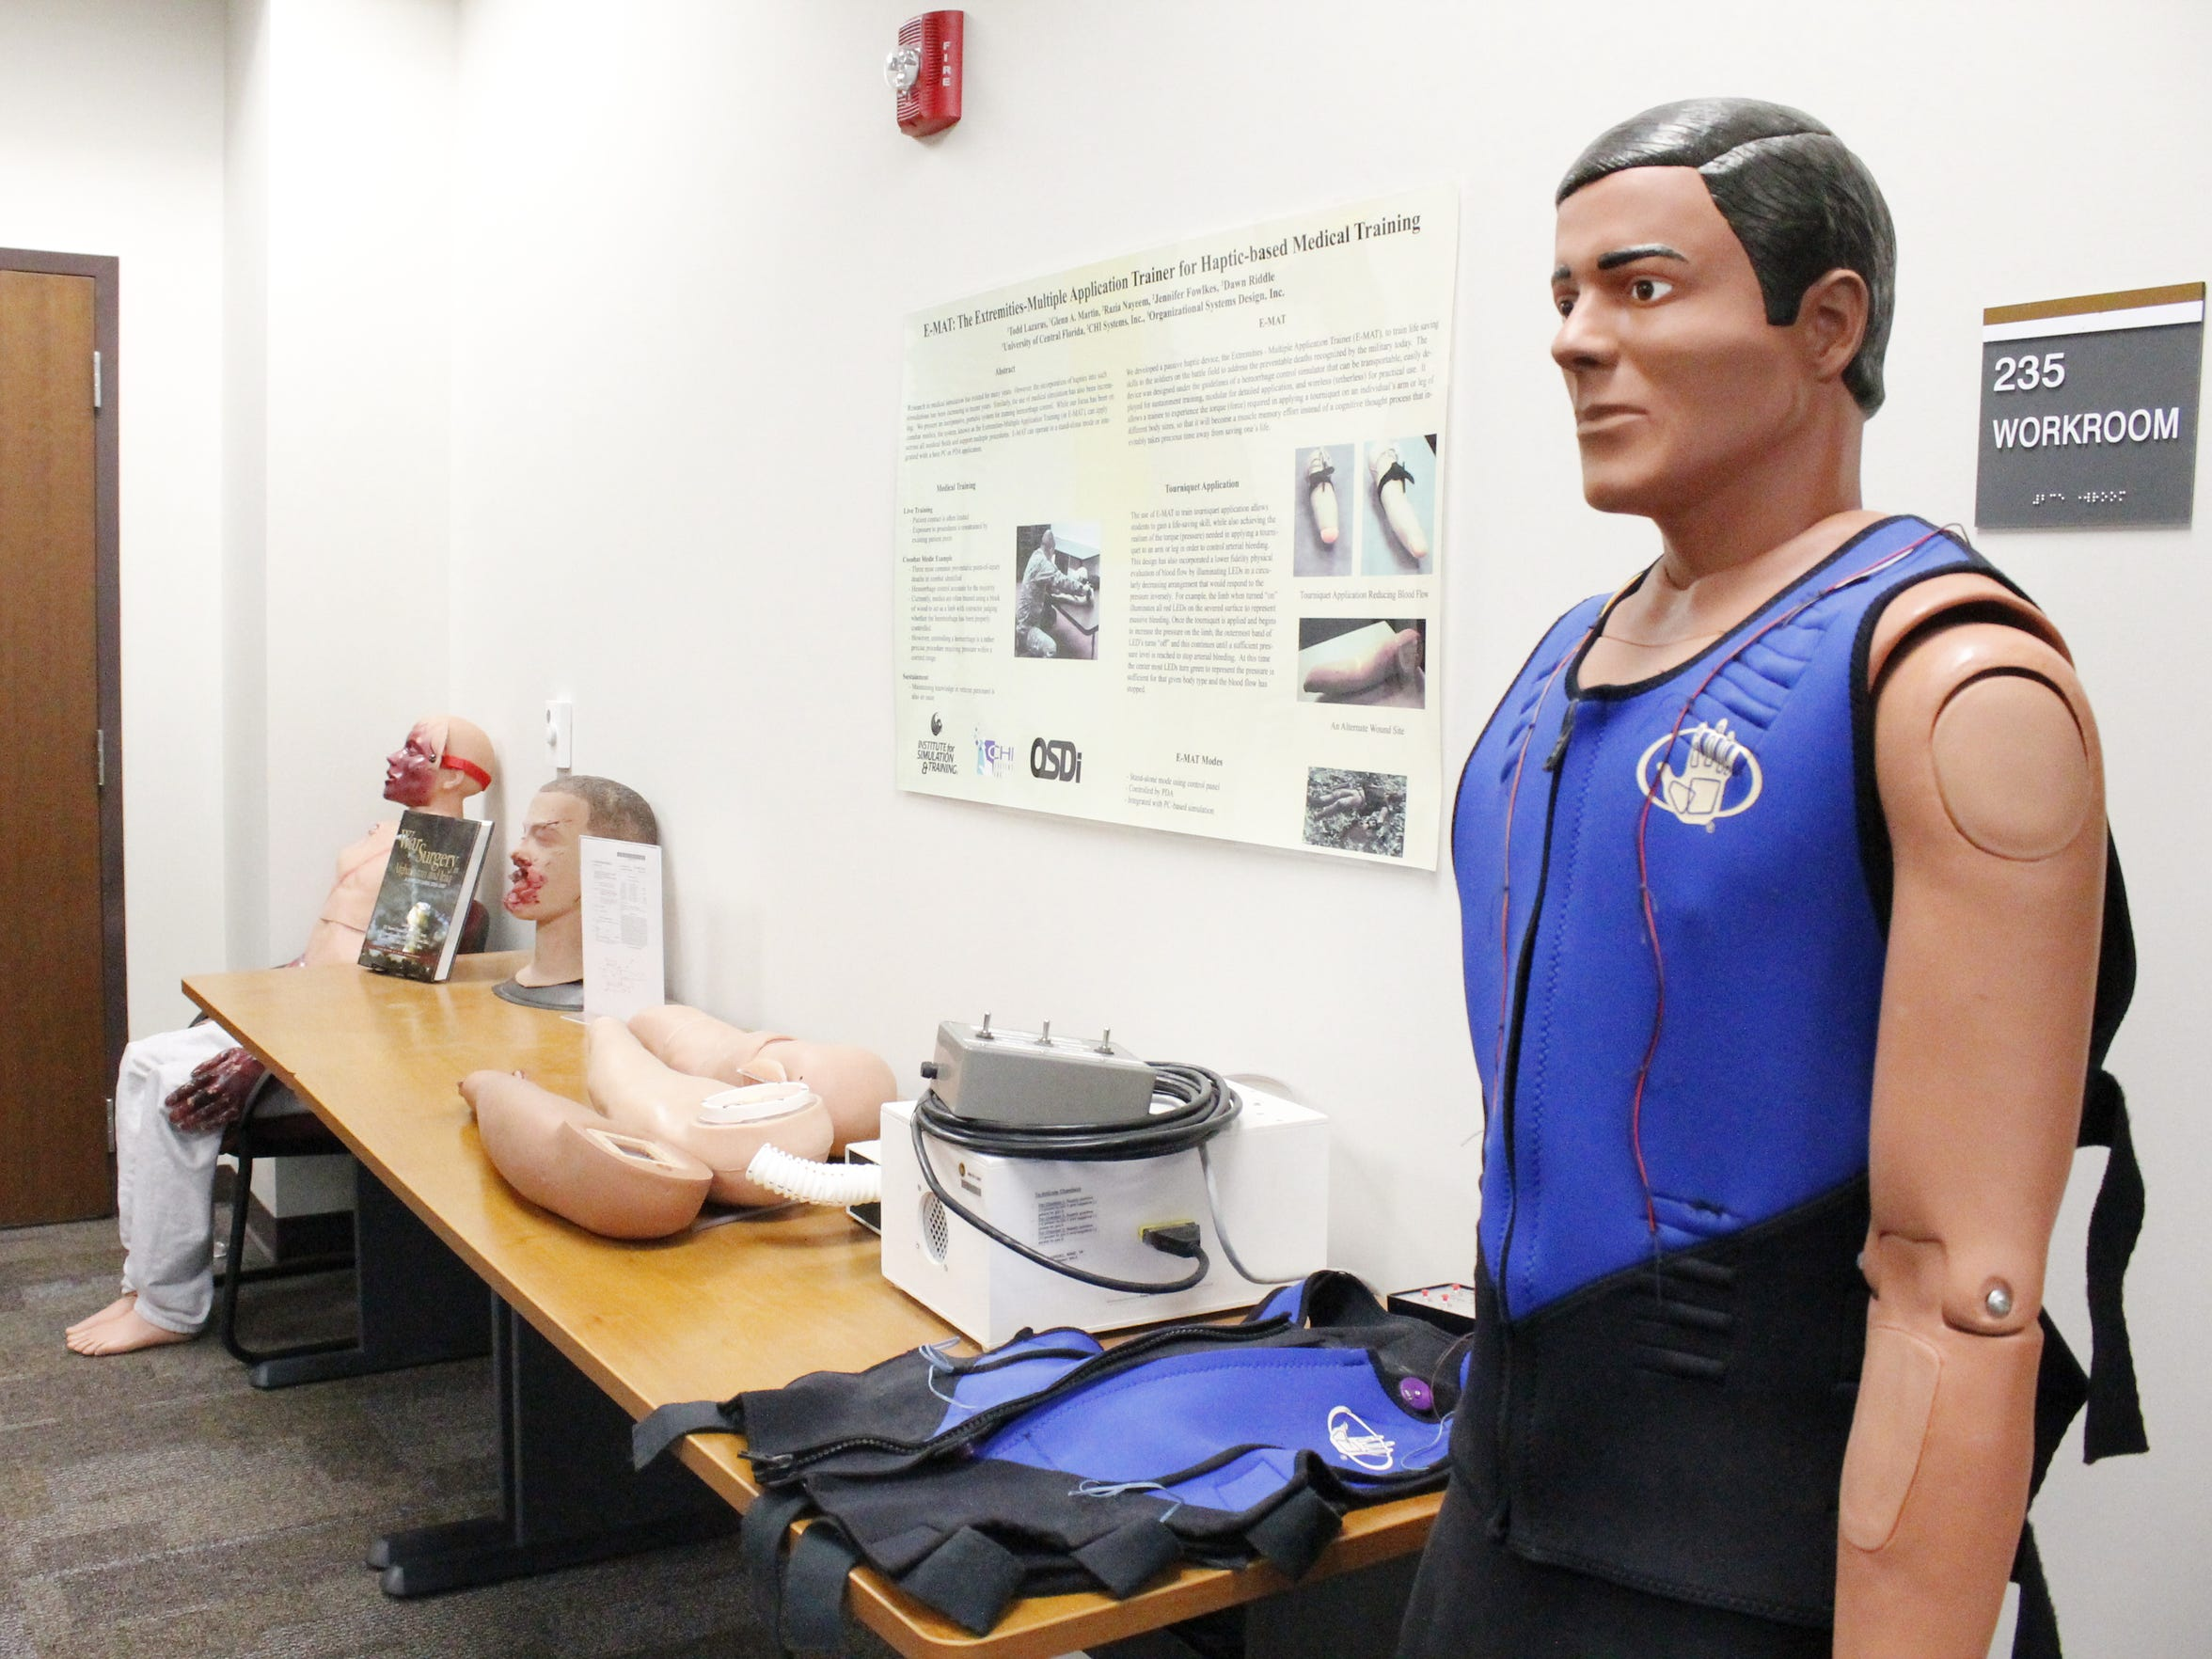 The Institute for Simulation and Training has also